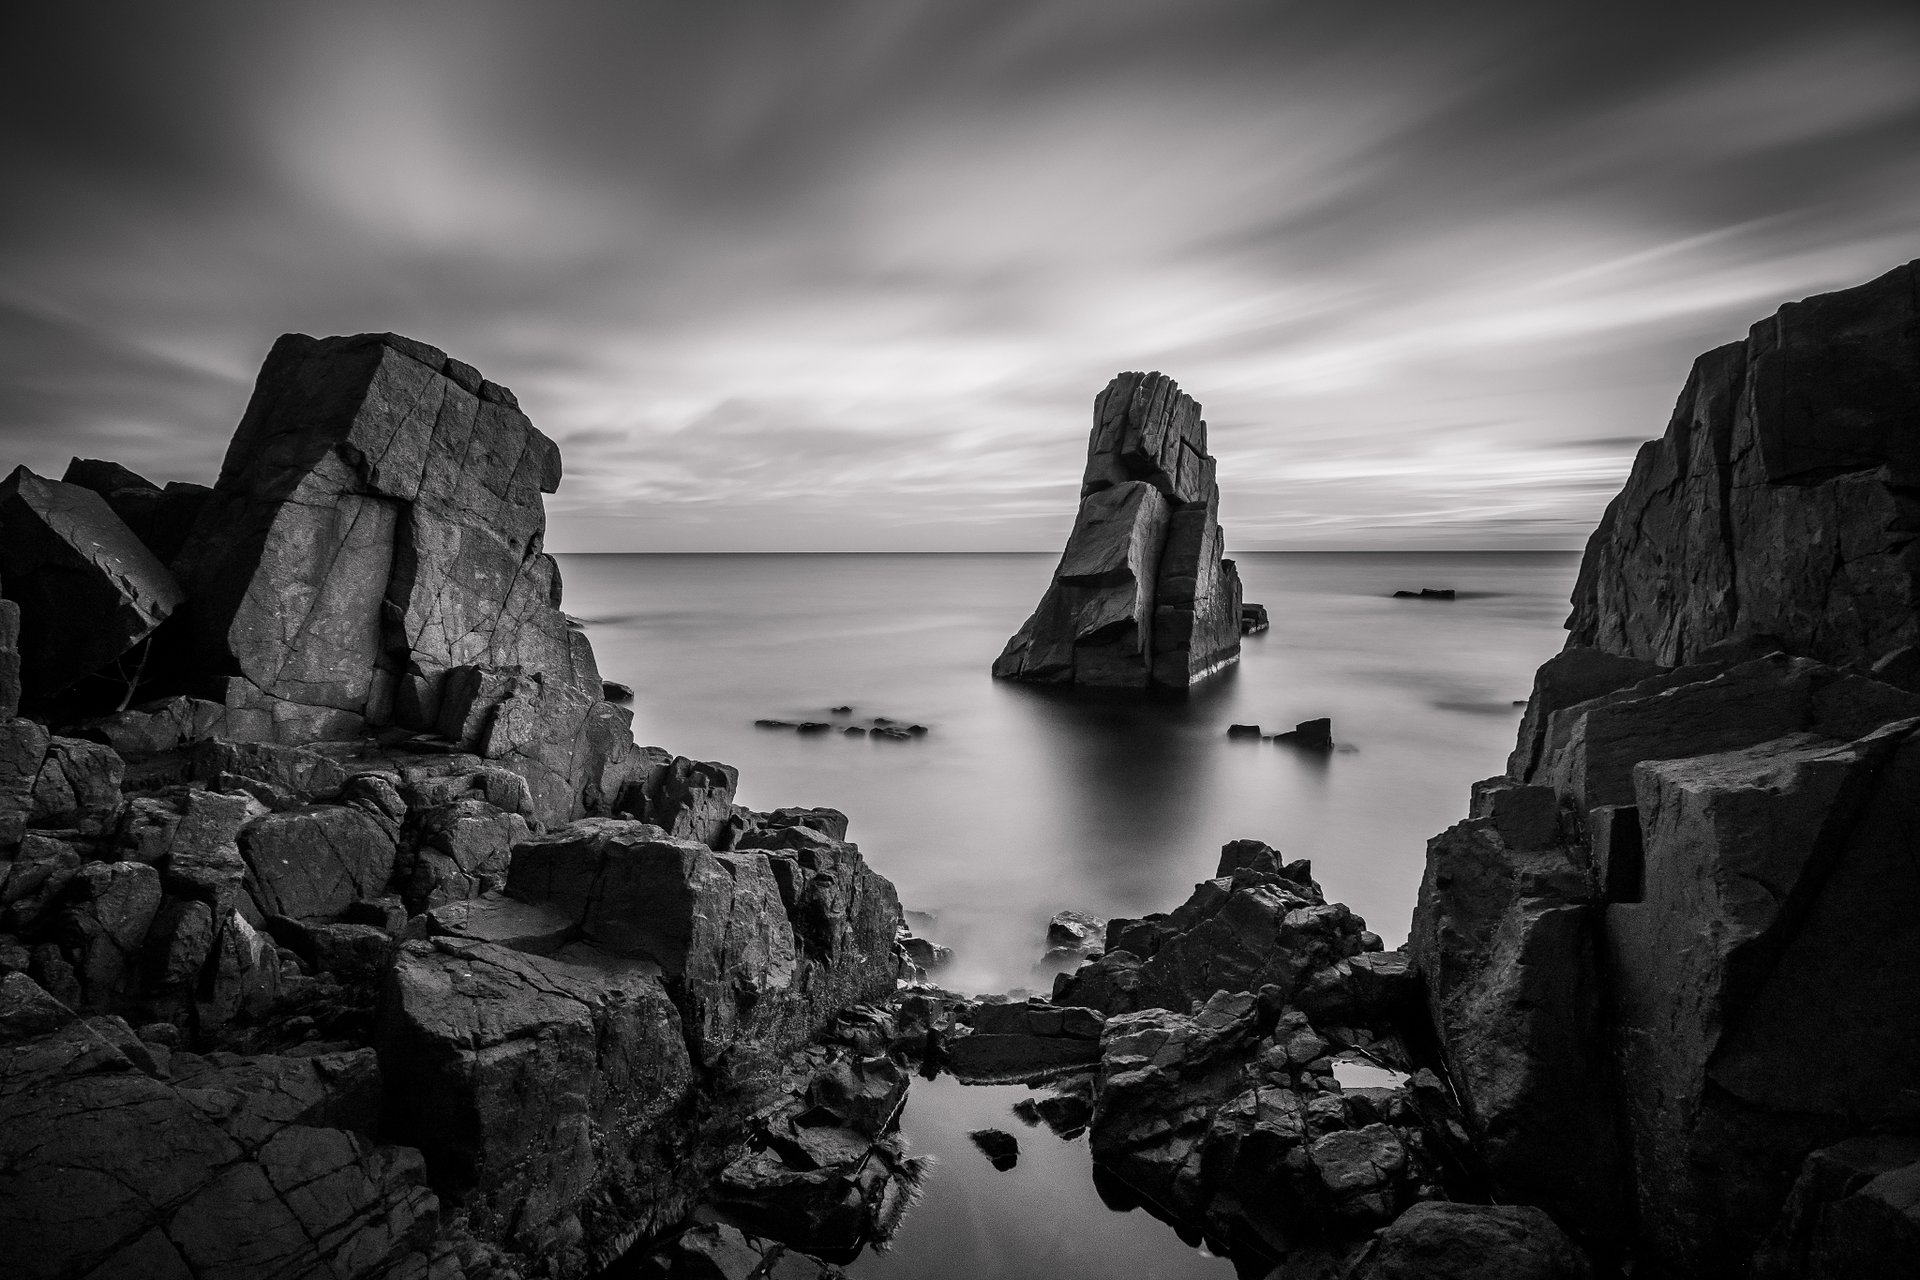 Photo in Landscape | Author skyblue | PHOTO FORUM